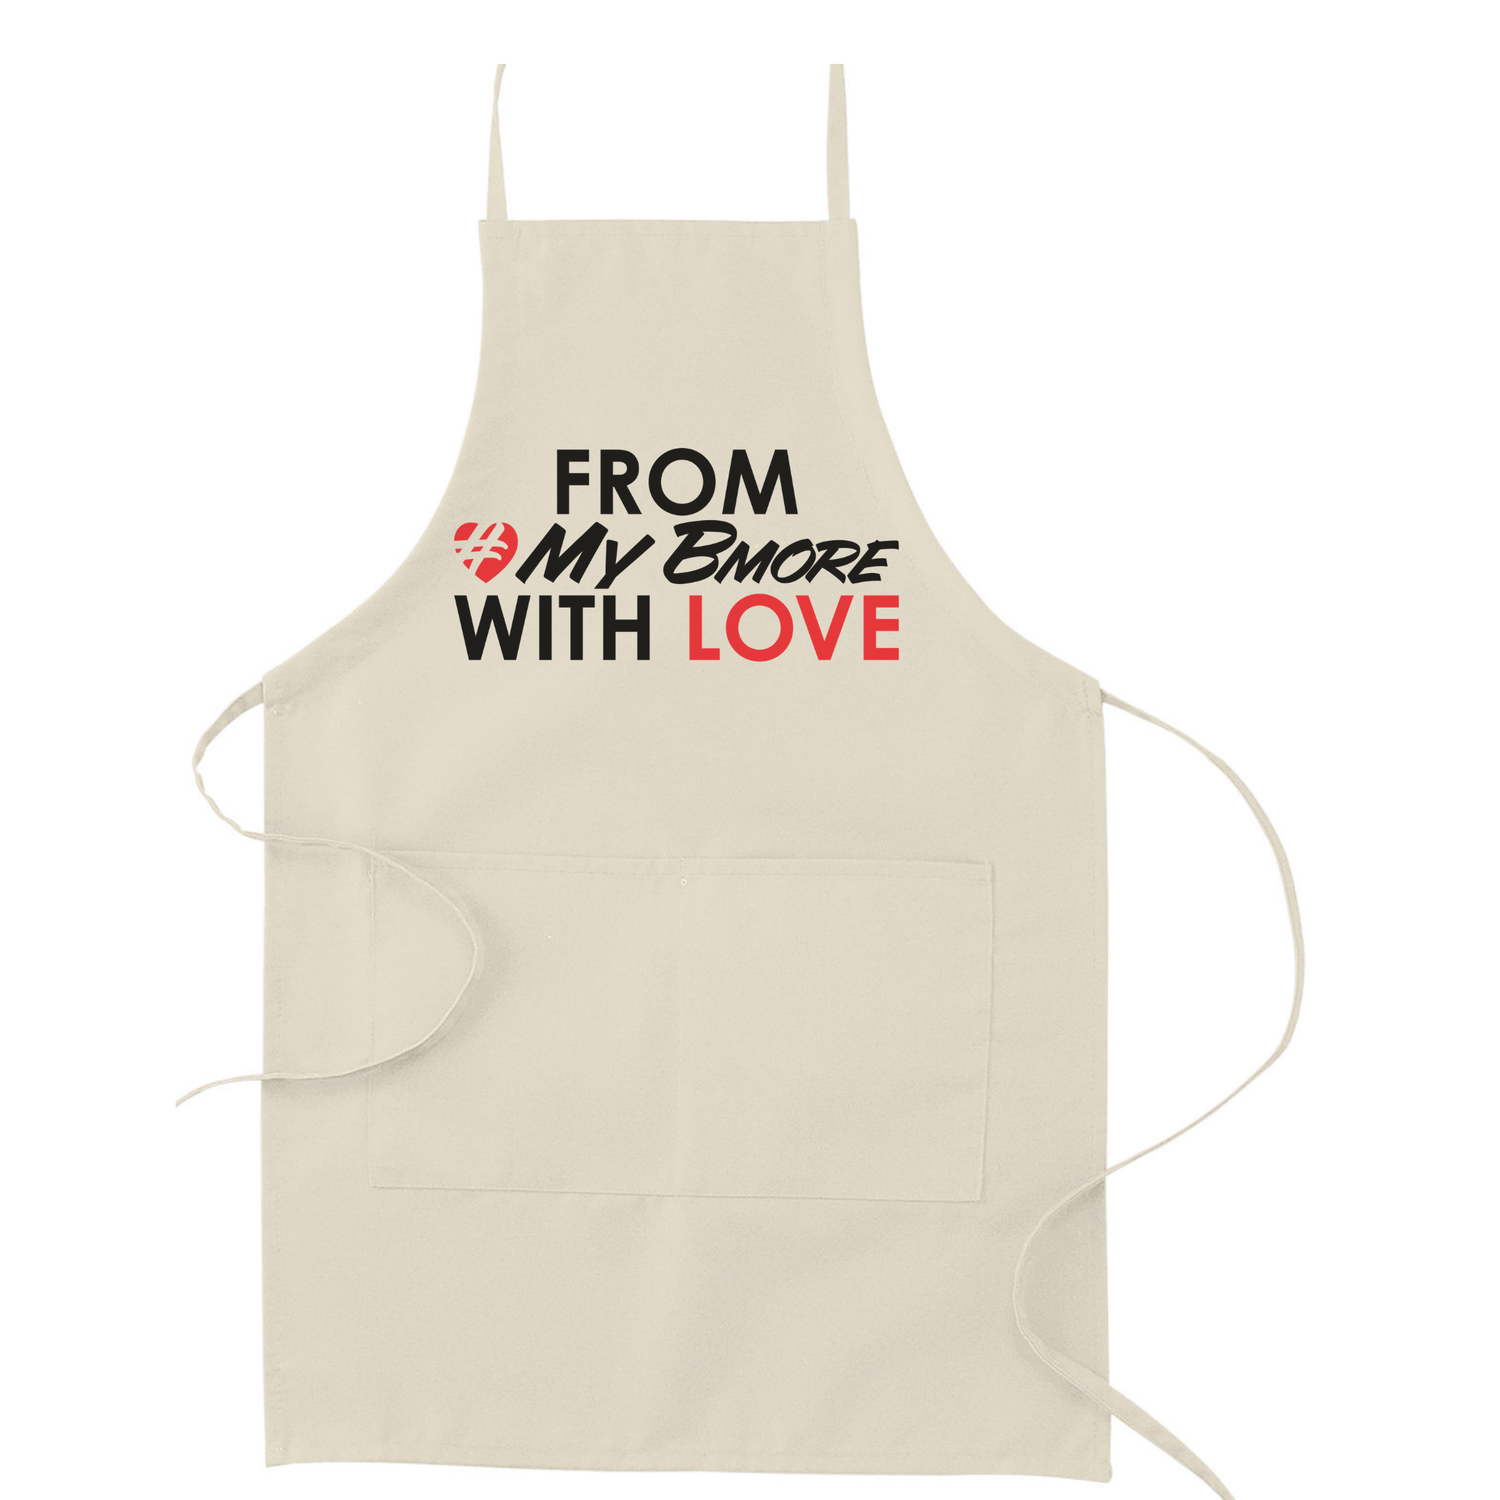 Image of From #MyBmore With Love Apron